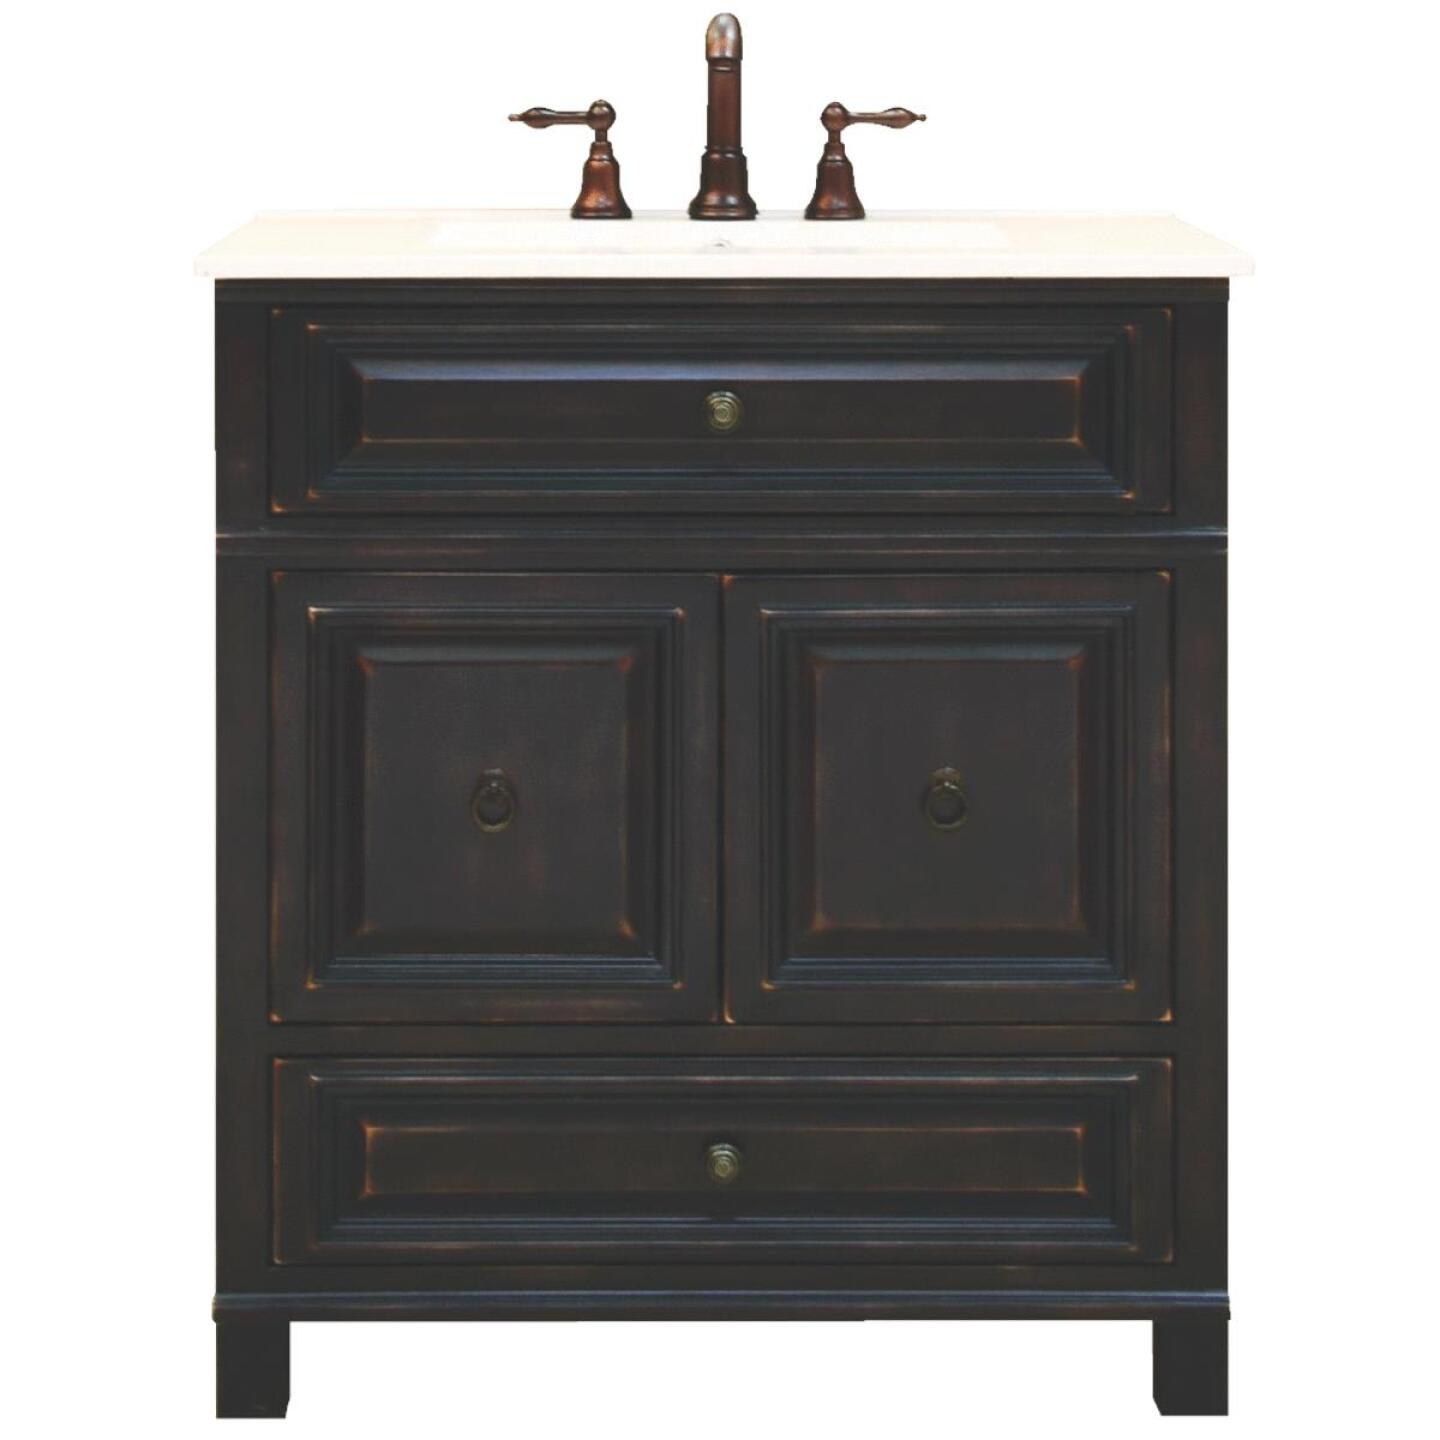 Sunny Wood Barton Hill Black Onyx 30 In. W x 34 In. H x 21 In. D Vanity Base, 2 Door/1 Drawer Image 192